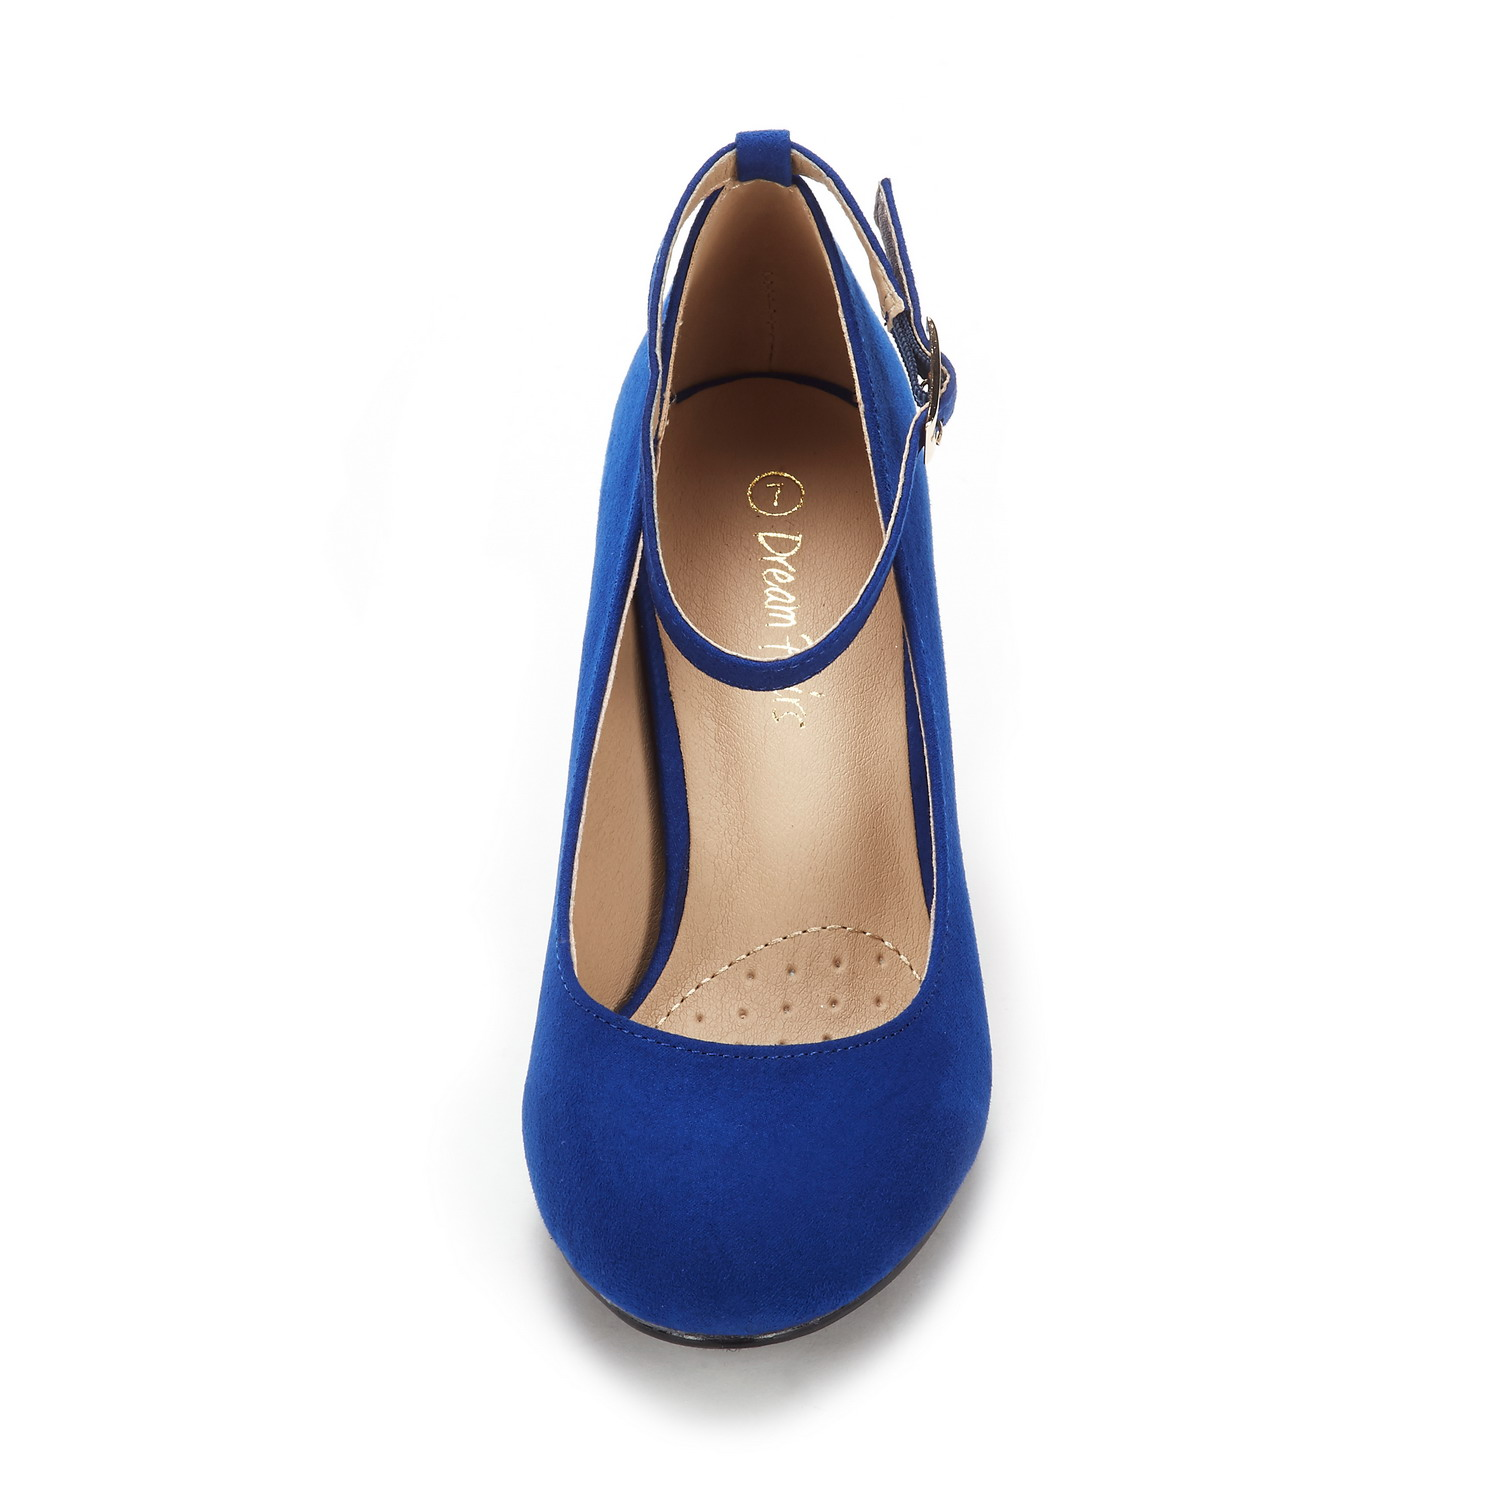 DREAM PAIRS Women/'s Demilee High Chunky Heel Ankle Strap Wedding Pump Shoes